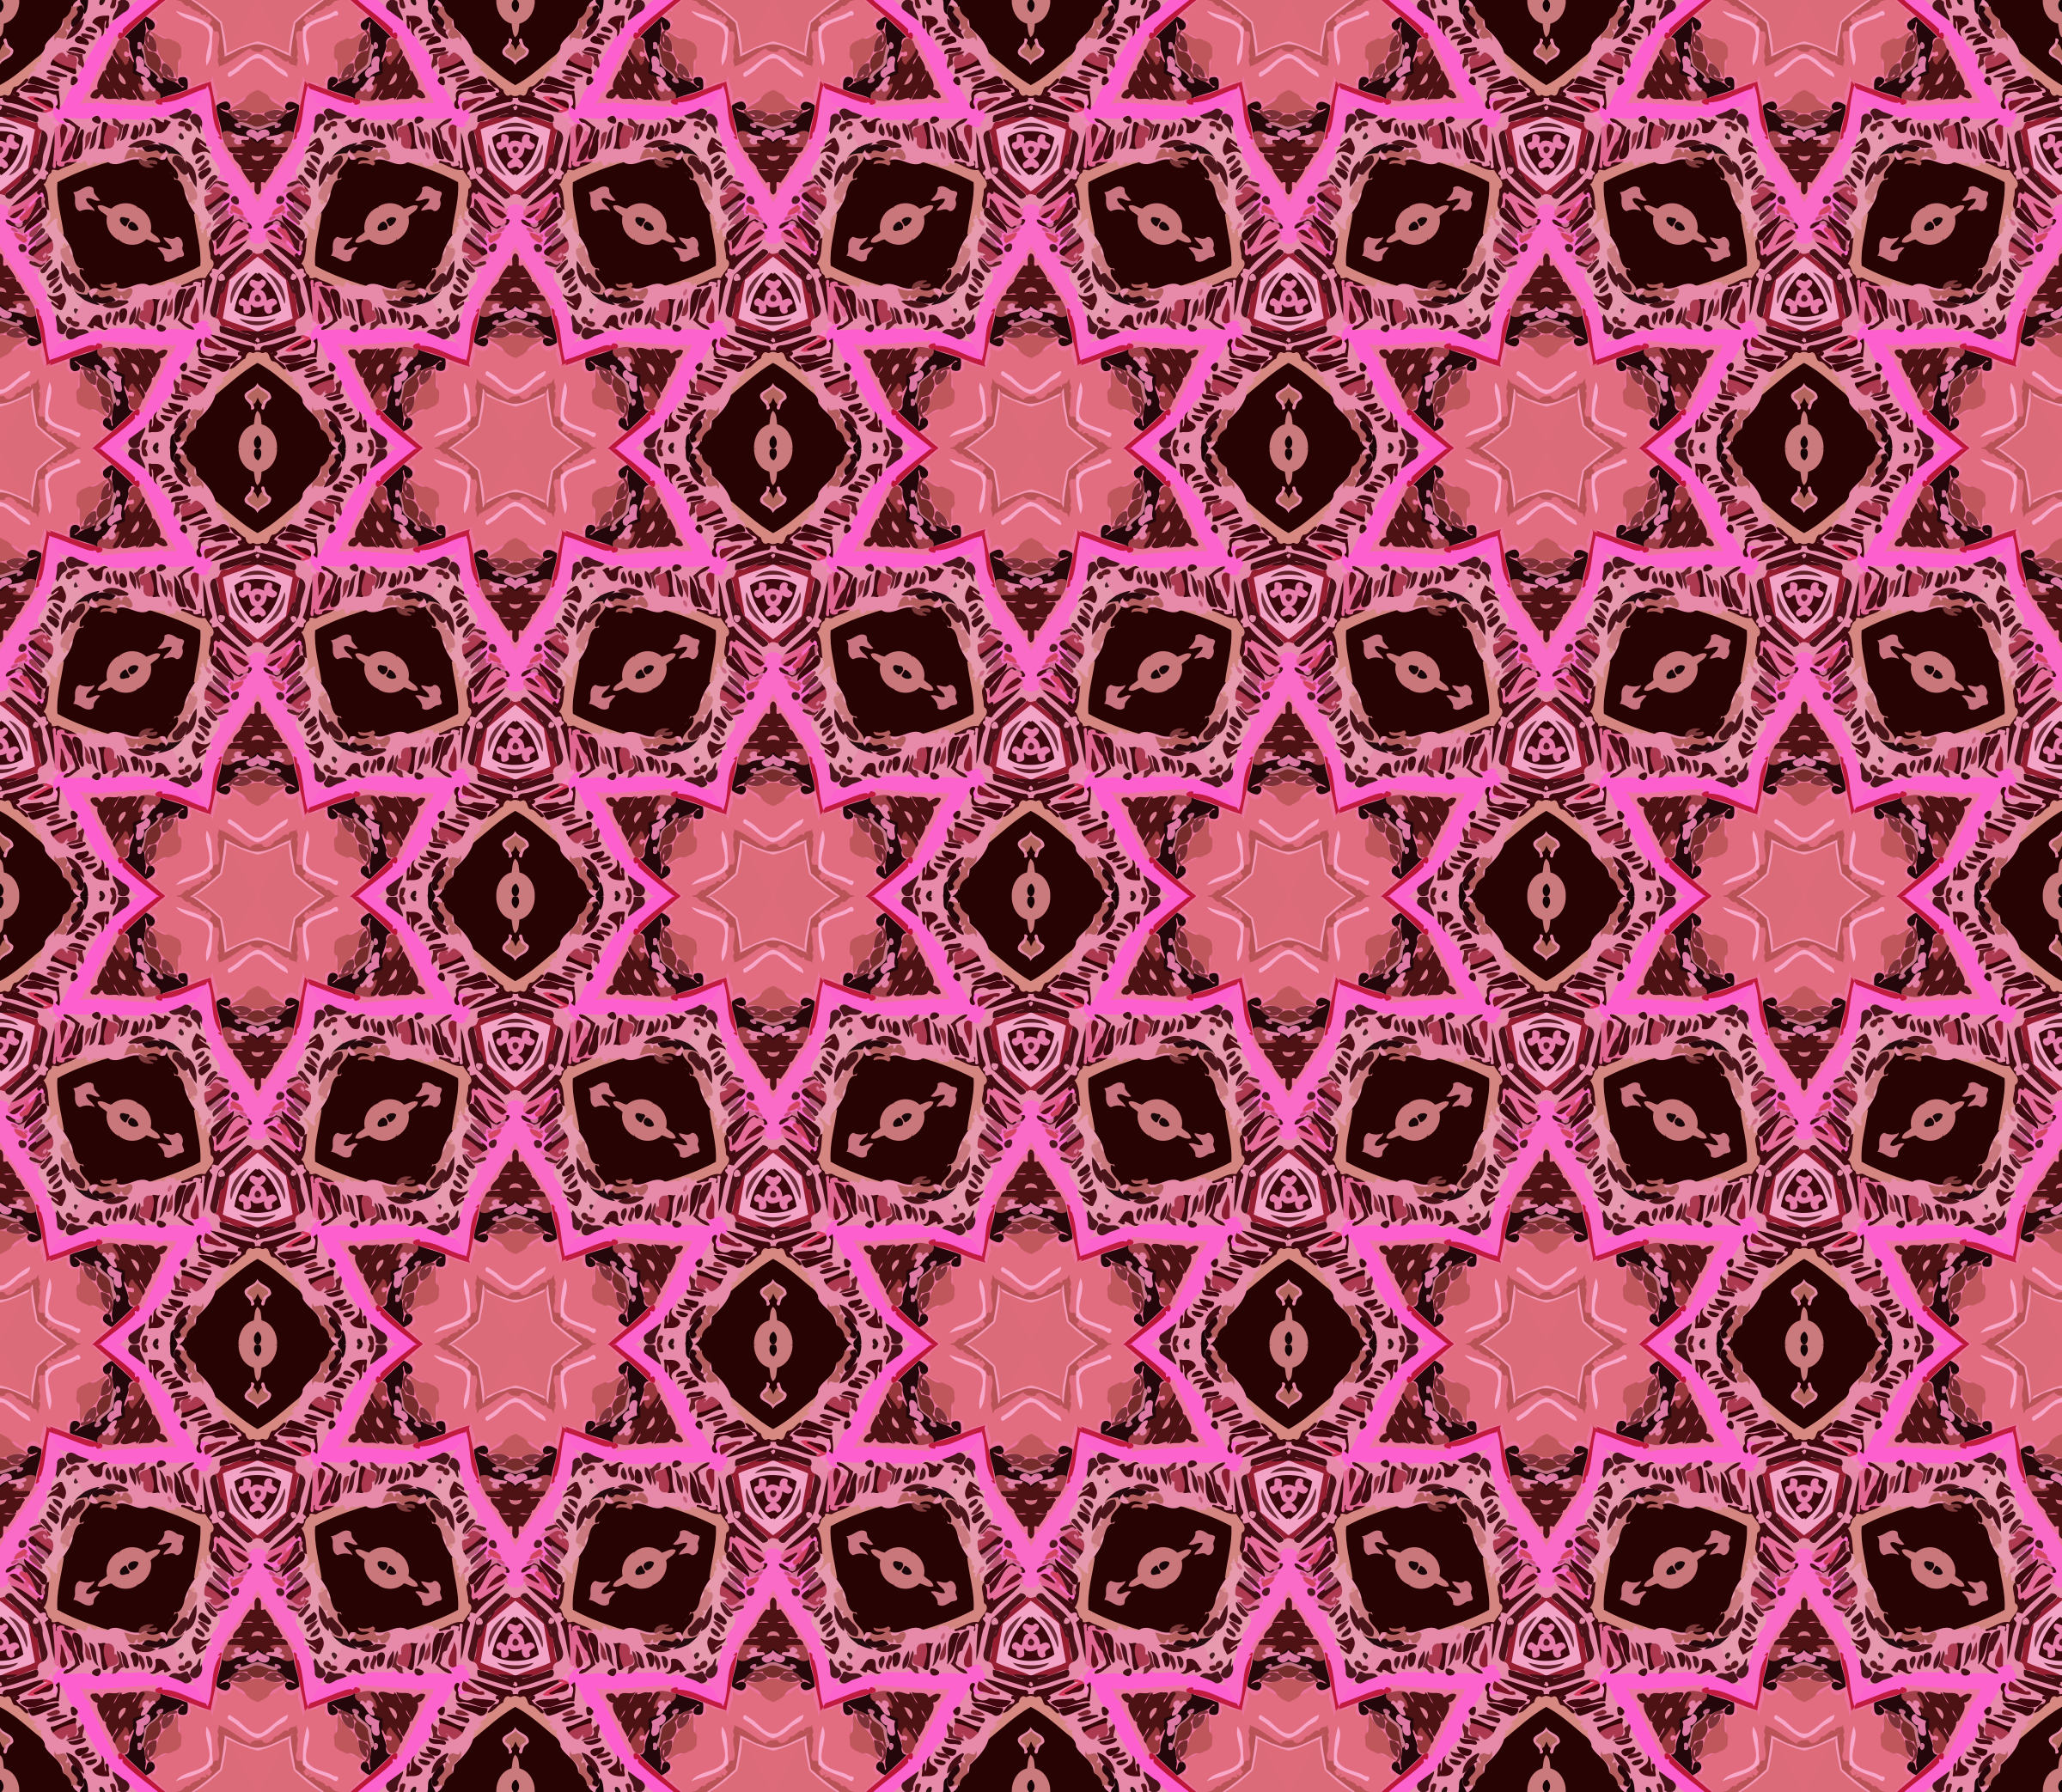 Background pattern 153 (colour 6) by Firkin